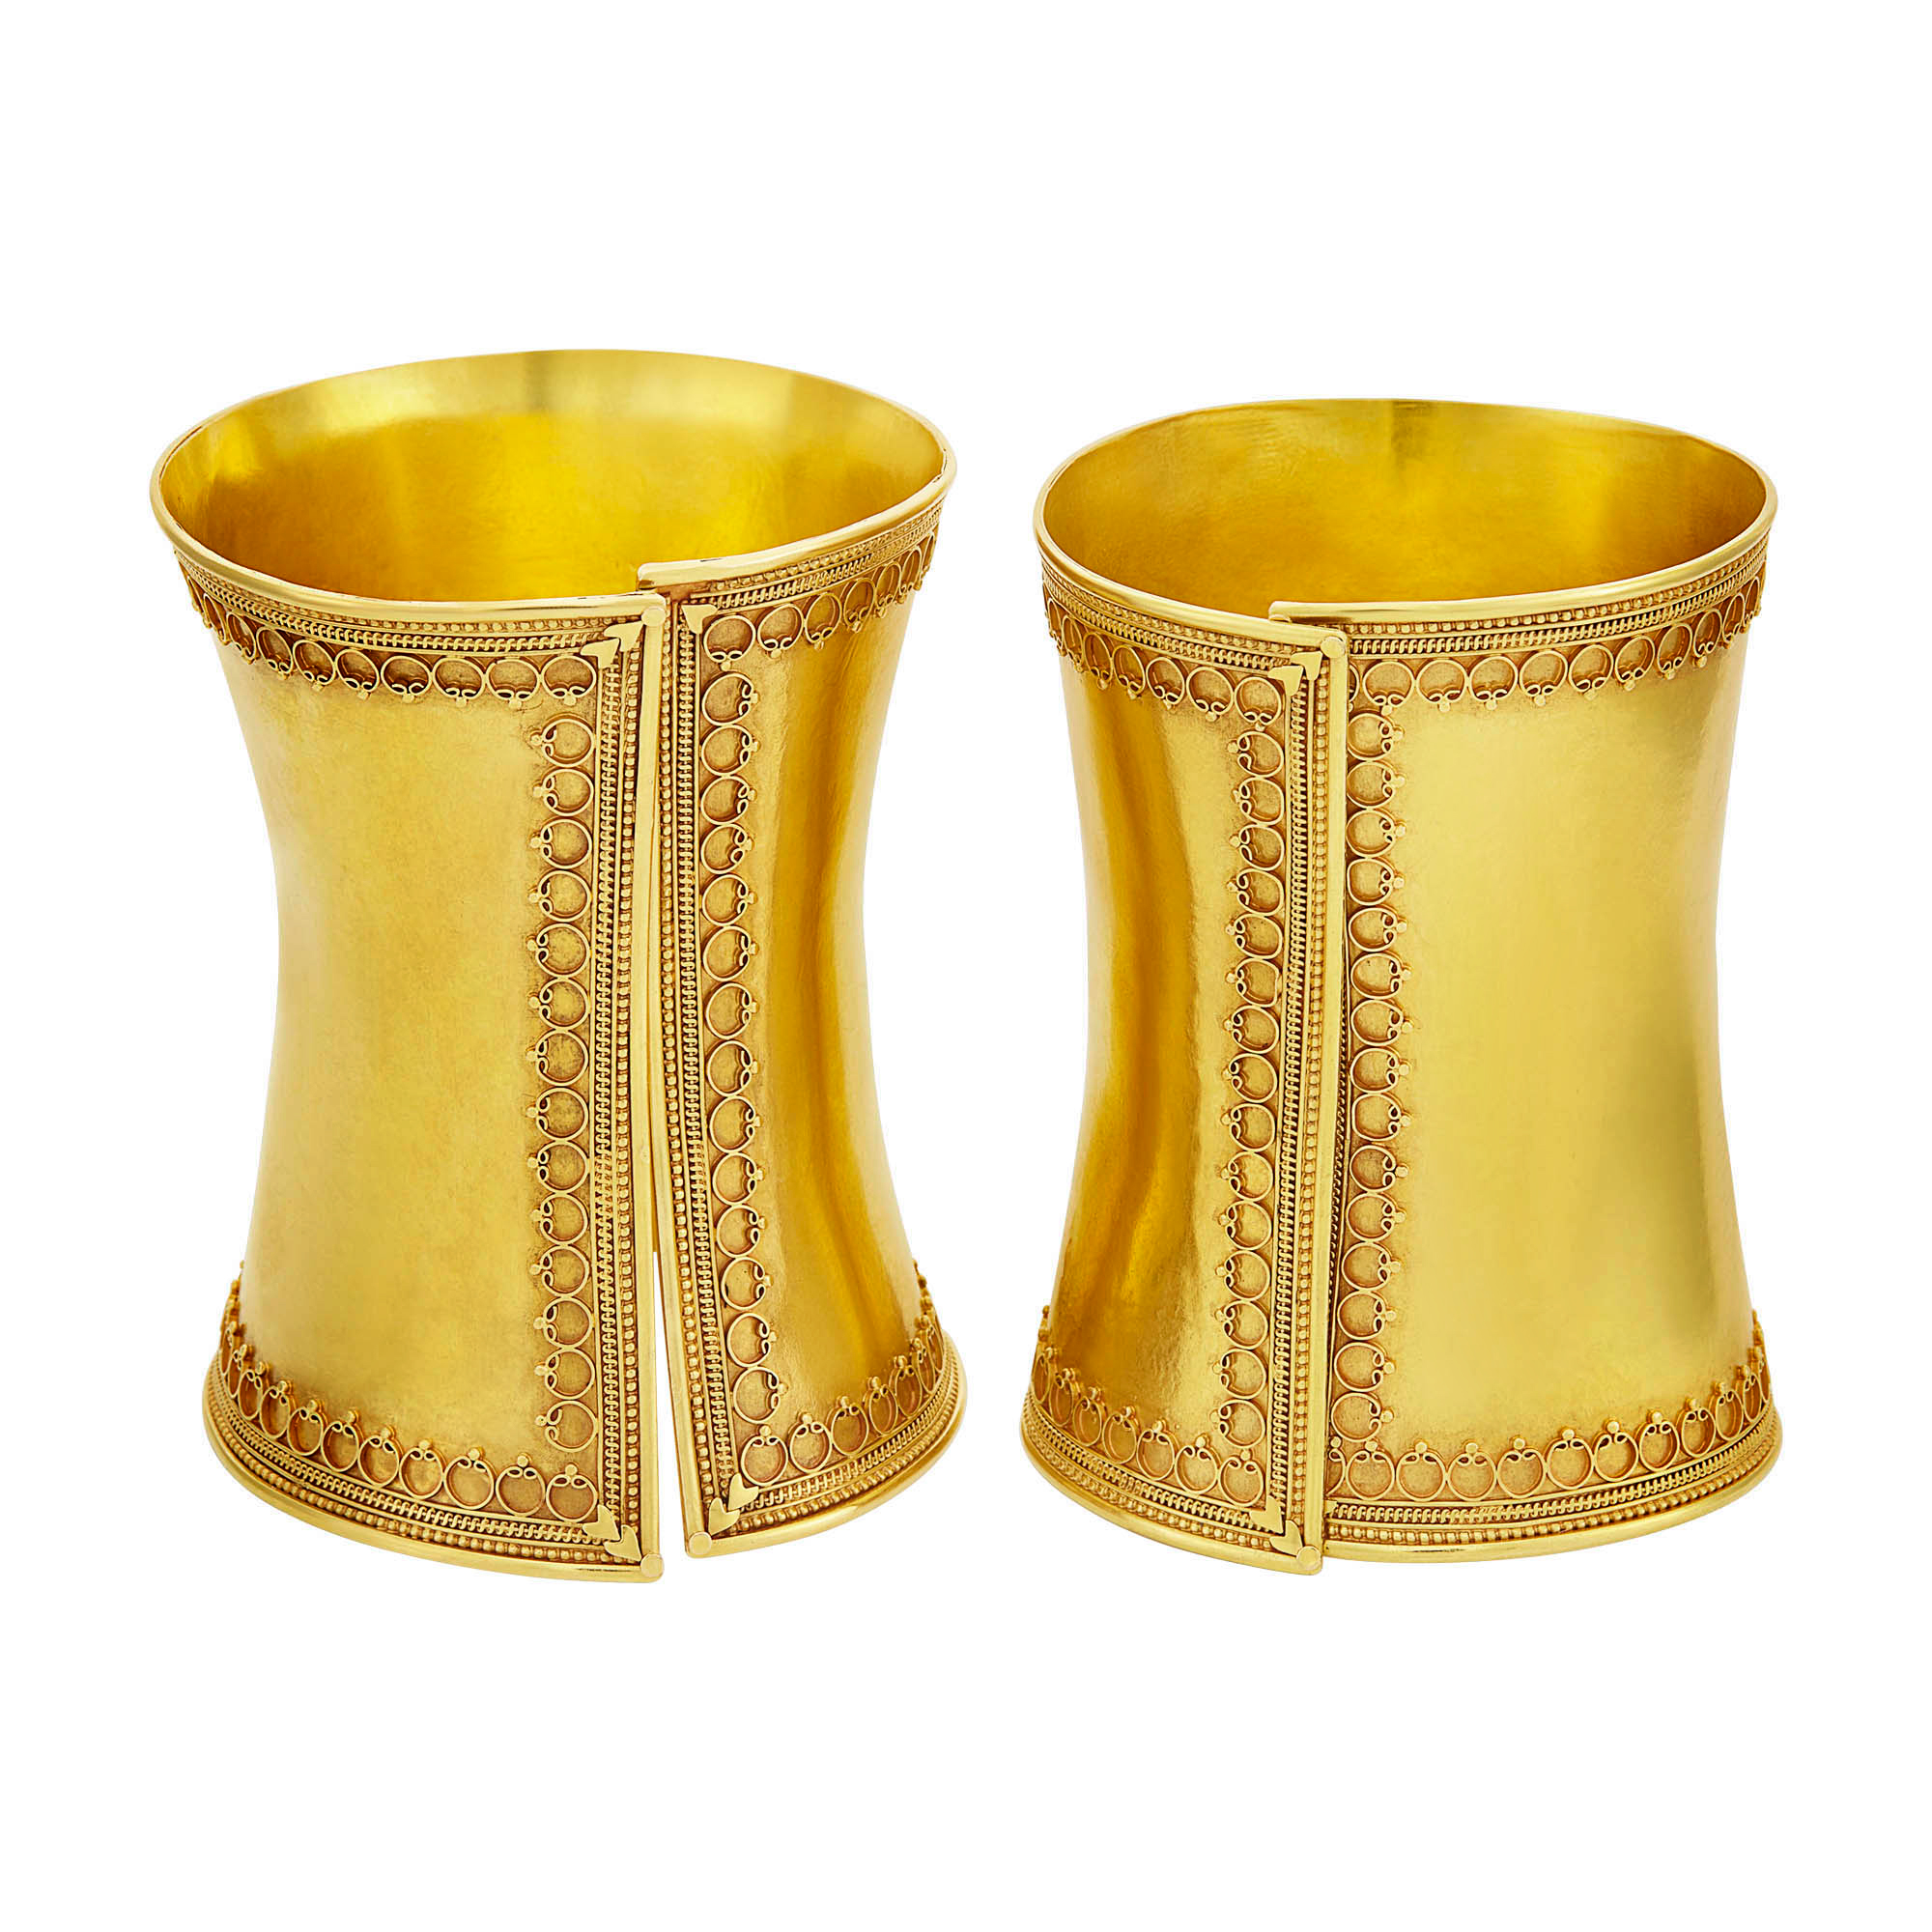 Lot image - Pair of Gold Cuff Bangle Bracelets